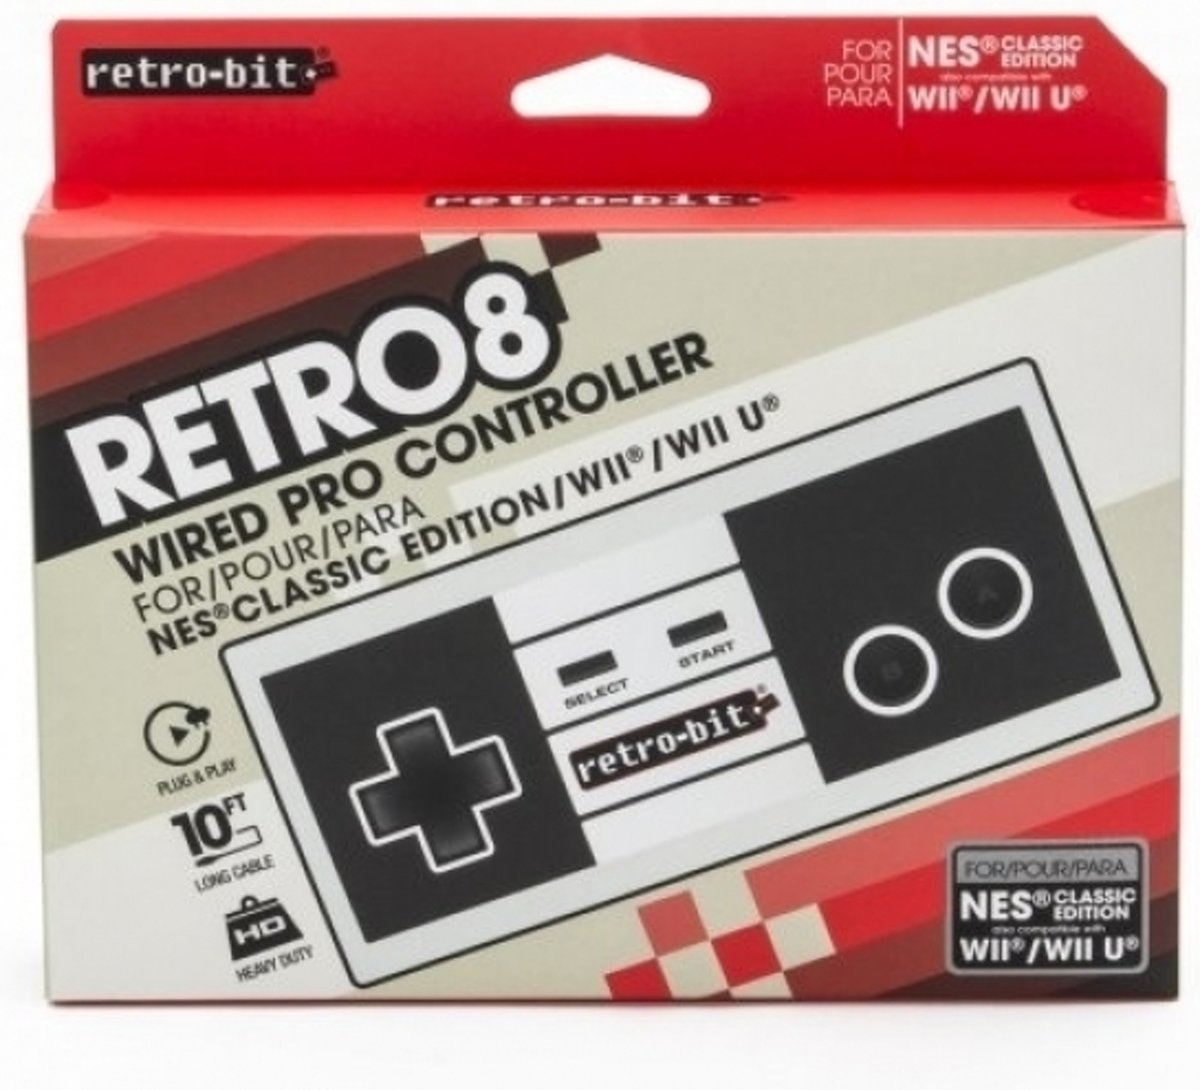 Retro8 Wired Pro   for NES Classic, Wii and Wiiu